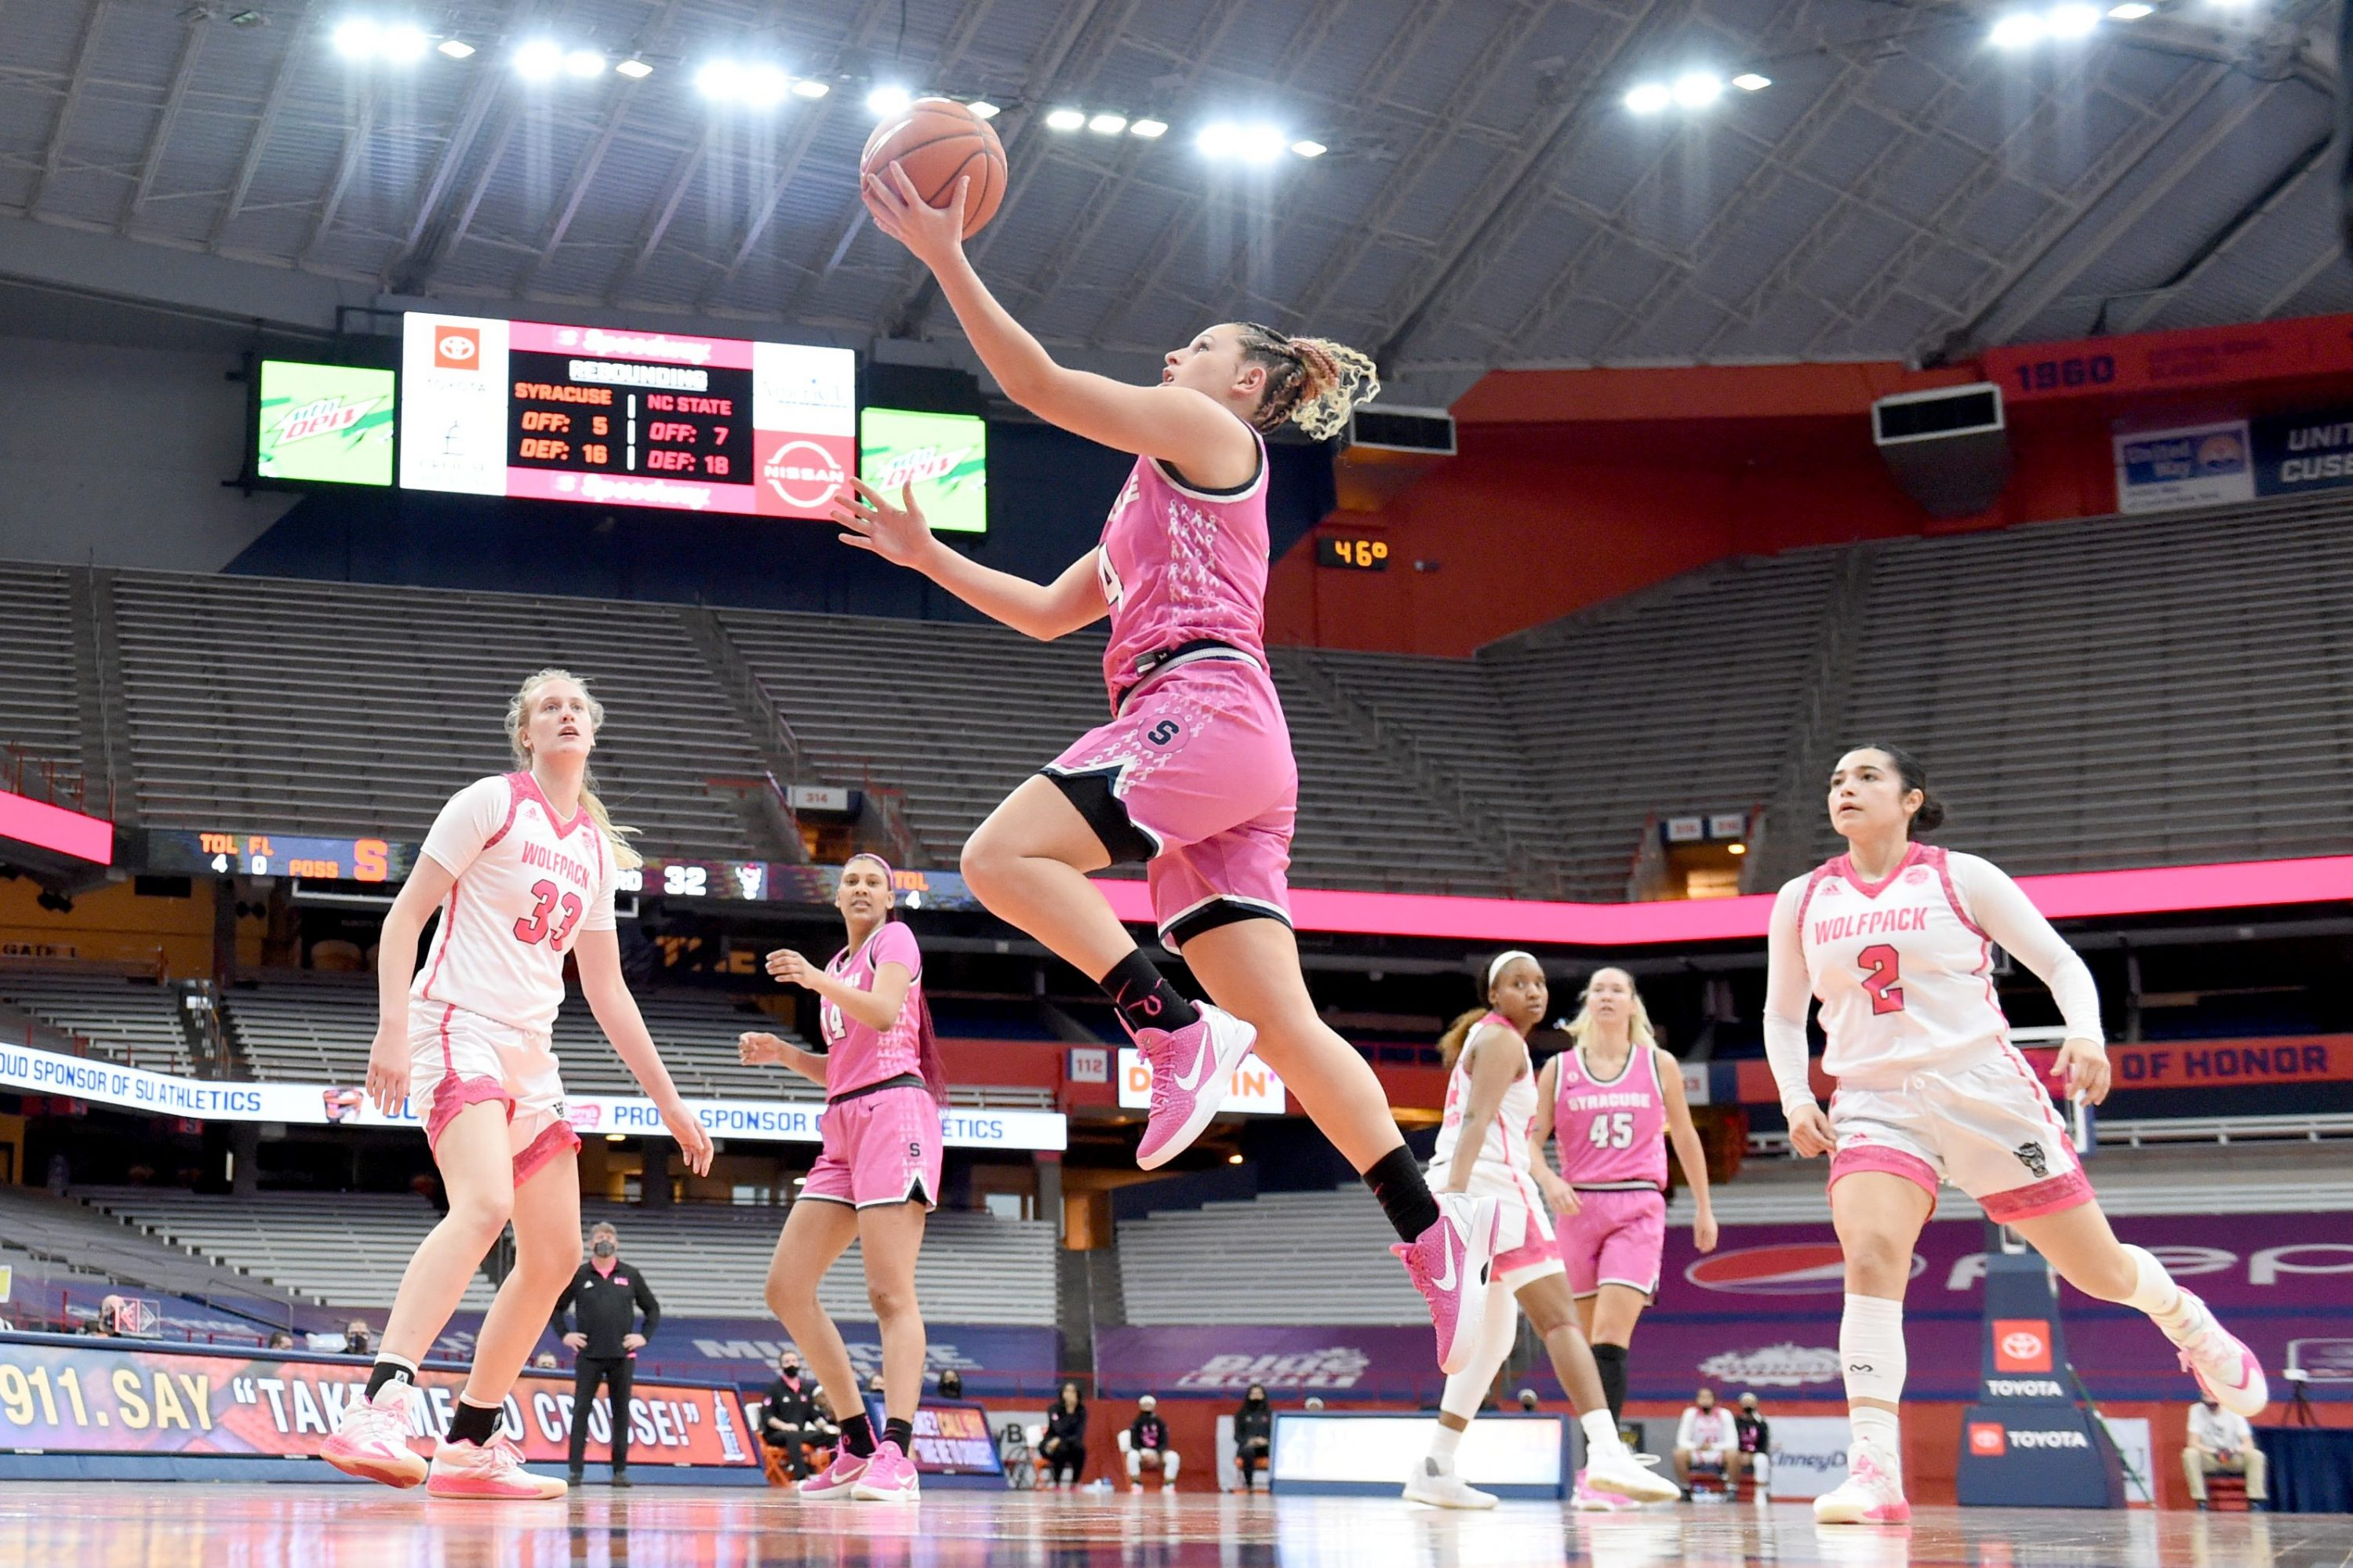 The Syracuse women's basketball team take on N.C. State at the Carrier Dome in Syracuse, N.Y. Feb 28, 2021